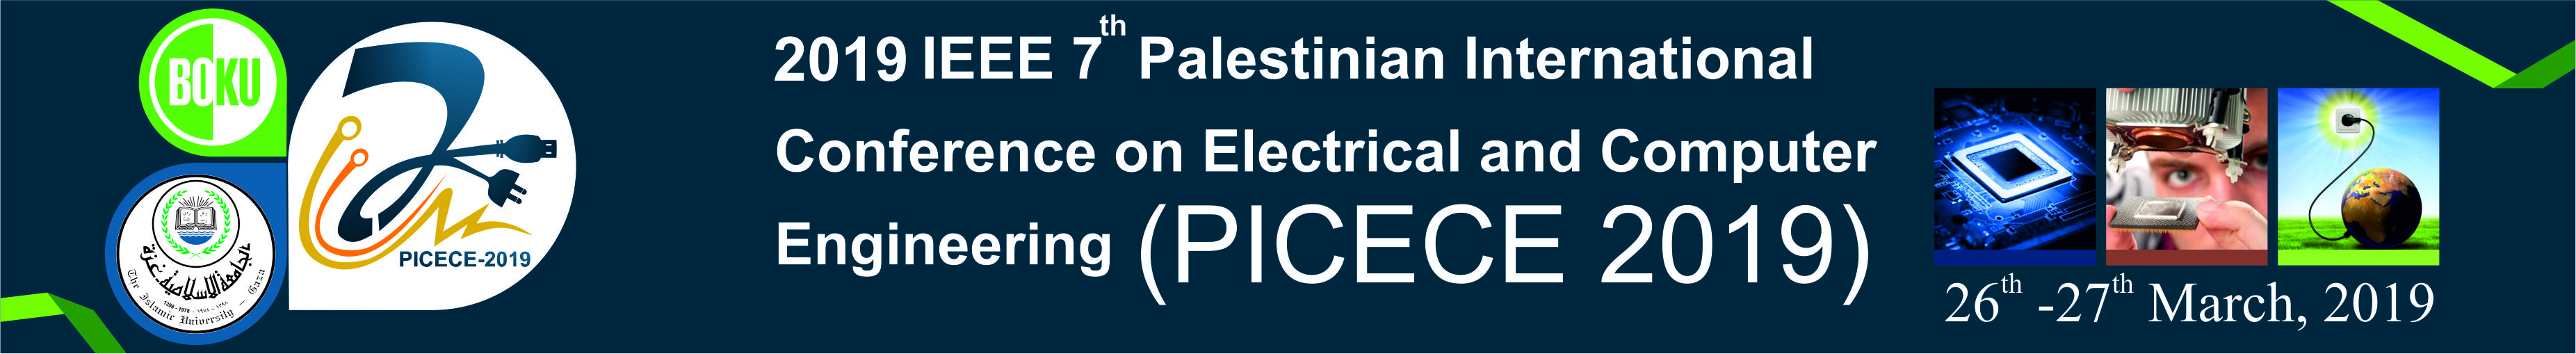 2018 IEEE 7th Palestinian International Conference on